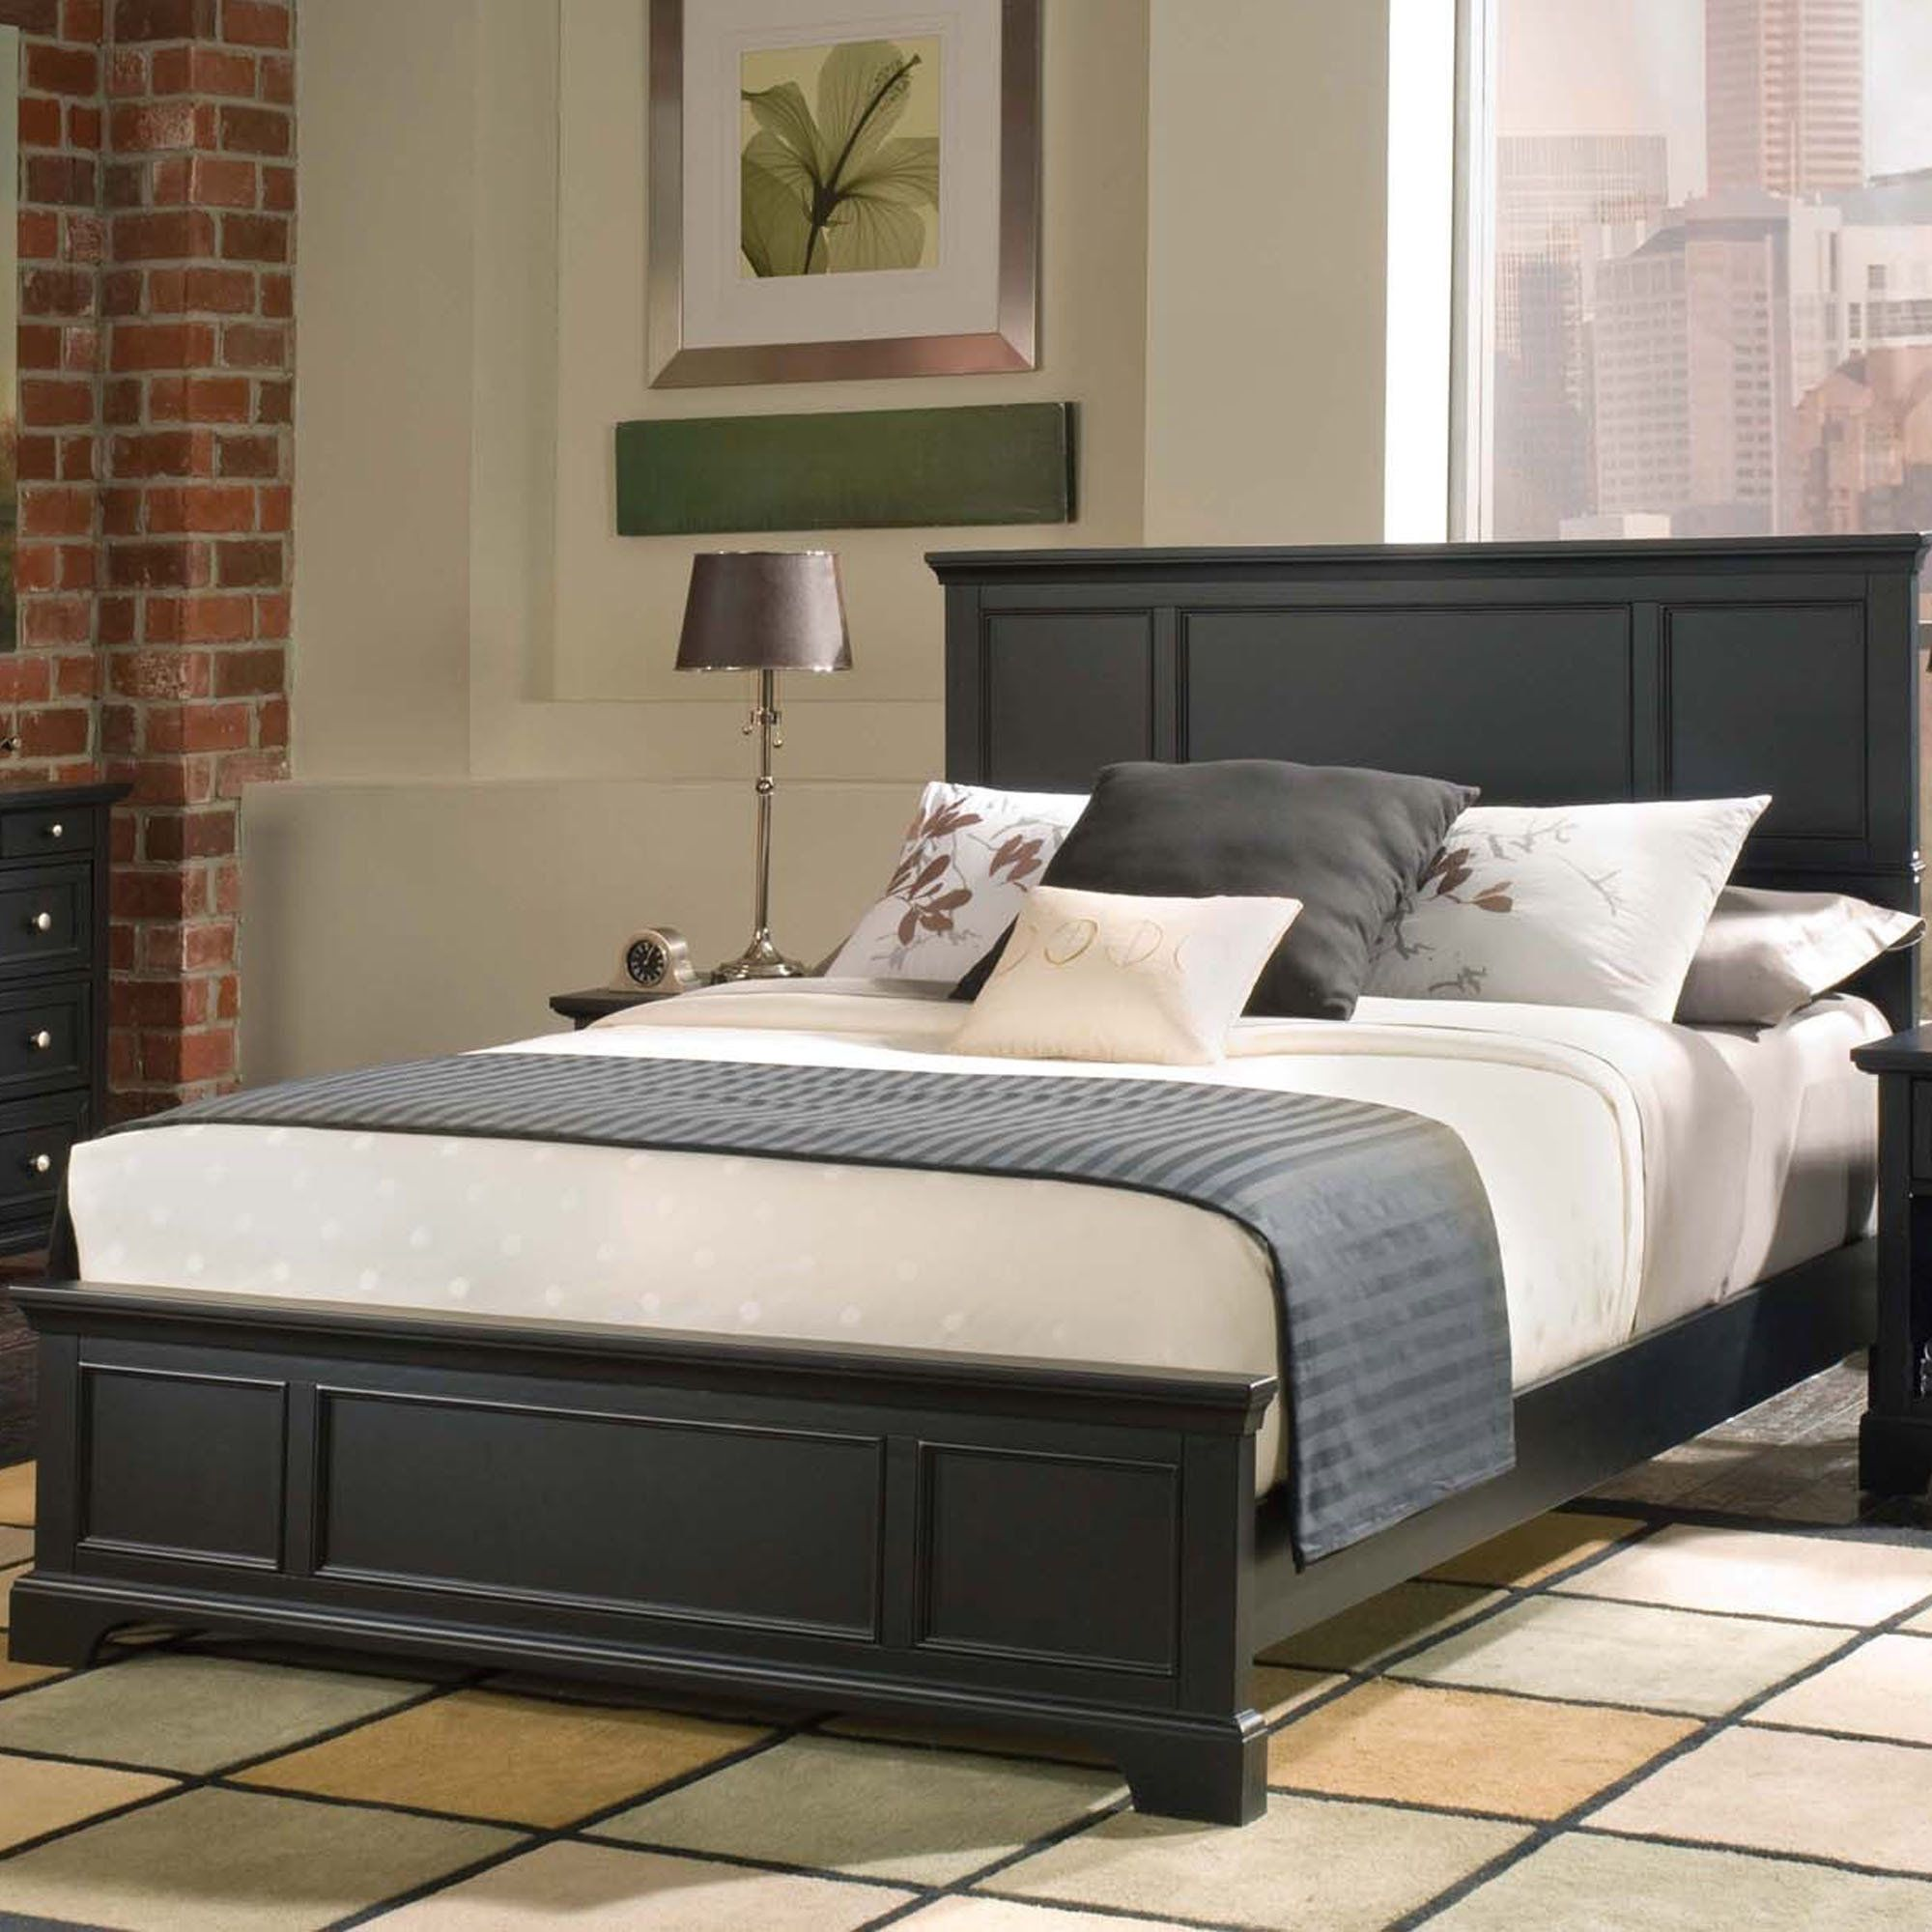 Transitional Bedroom Decor Google Search Bedroom Sets Queen